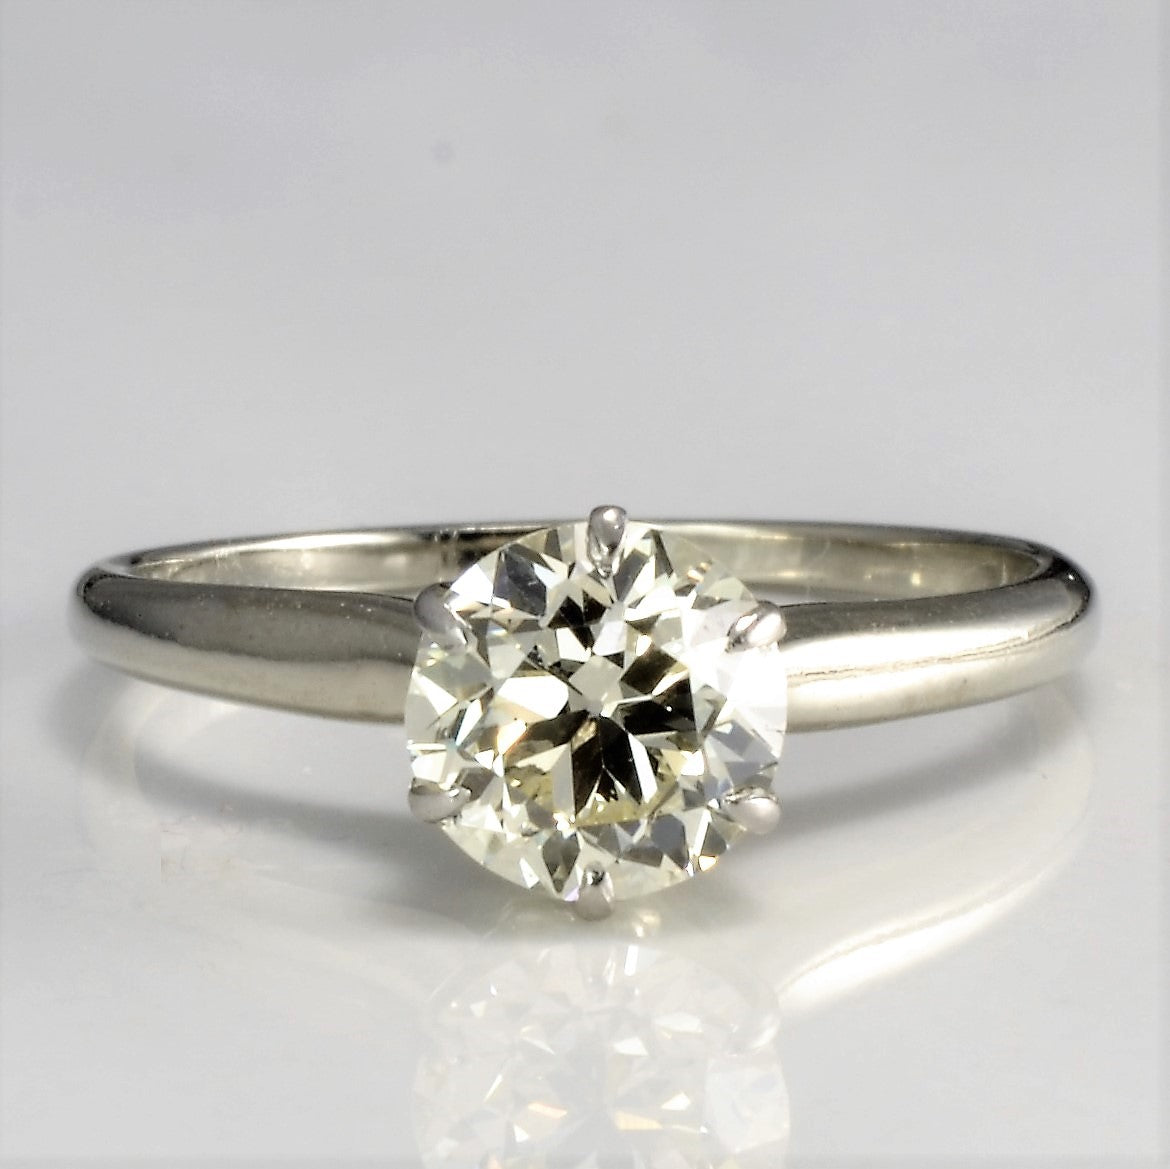 Vintage Solitaire Diamond Engagement Ring | 0.87 ct, SZ 5.25 |